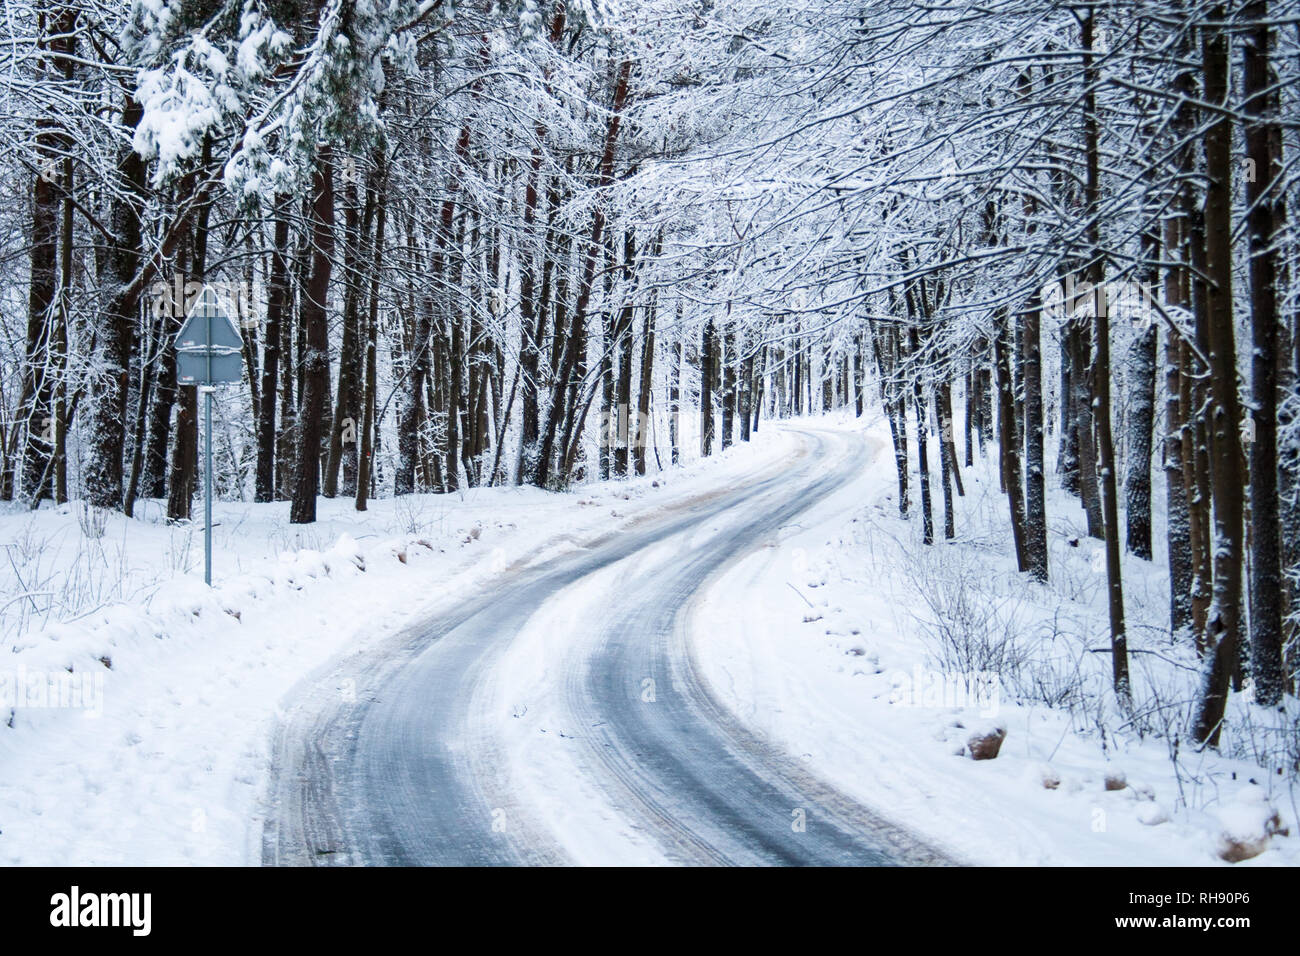 Slippery icy road through the forest with trees and snow on both sides - Stock Image